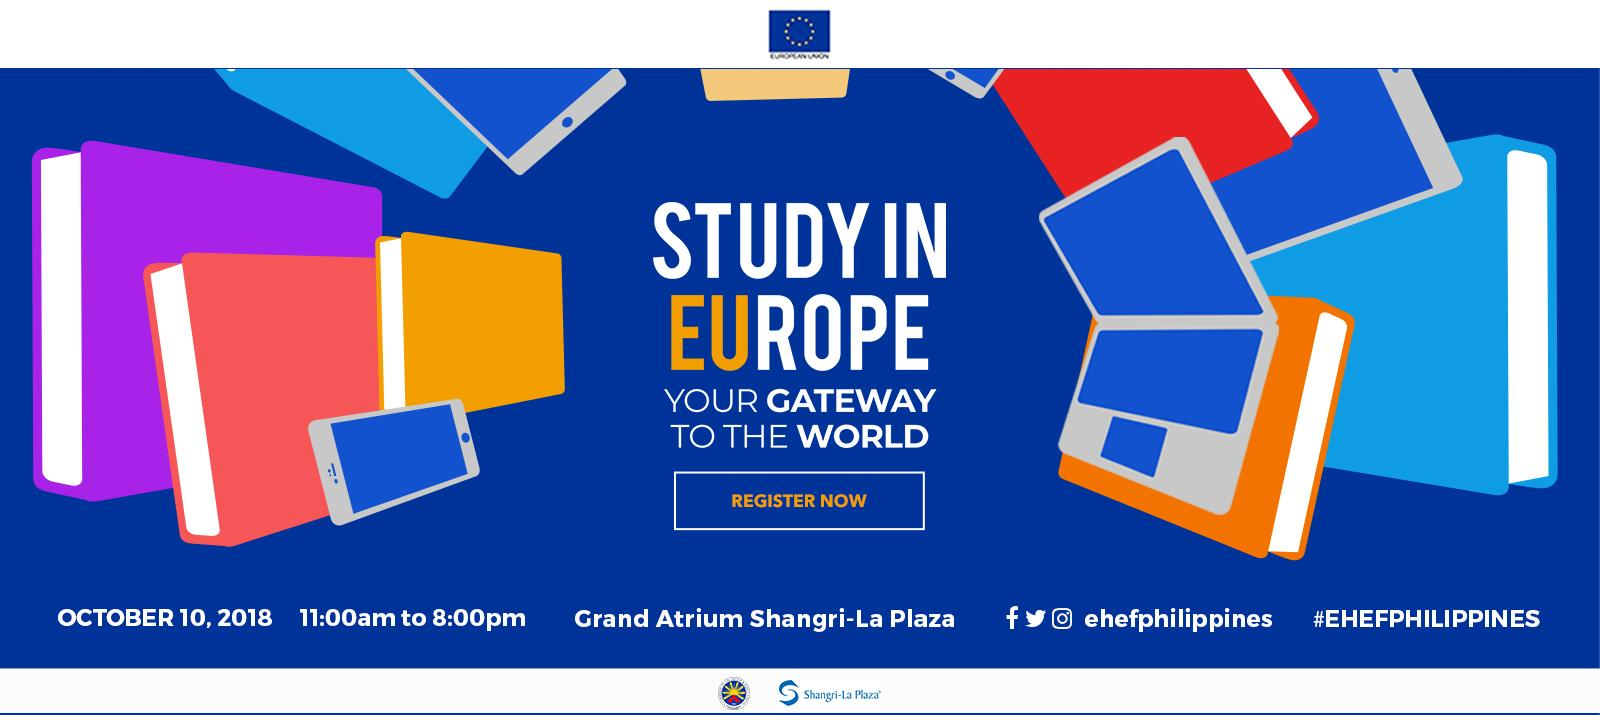 Come to the European Higher Education Fair on 10 October 2018 at Shangri-La Plaza